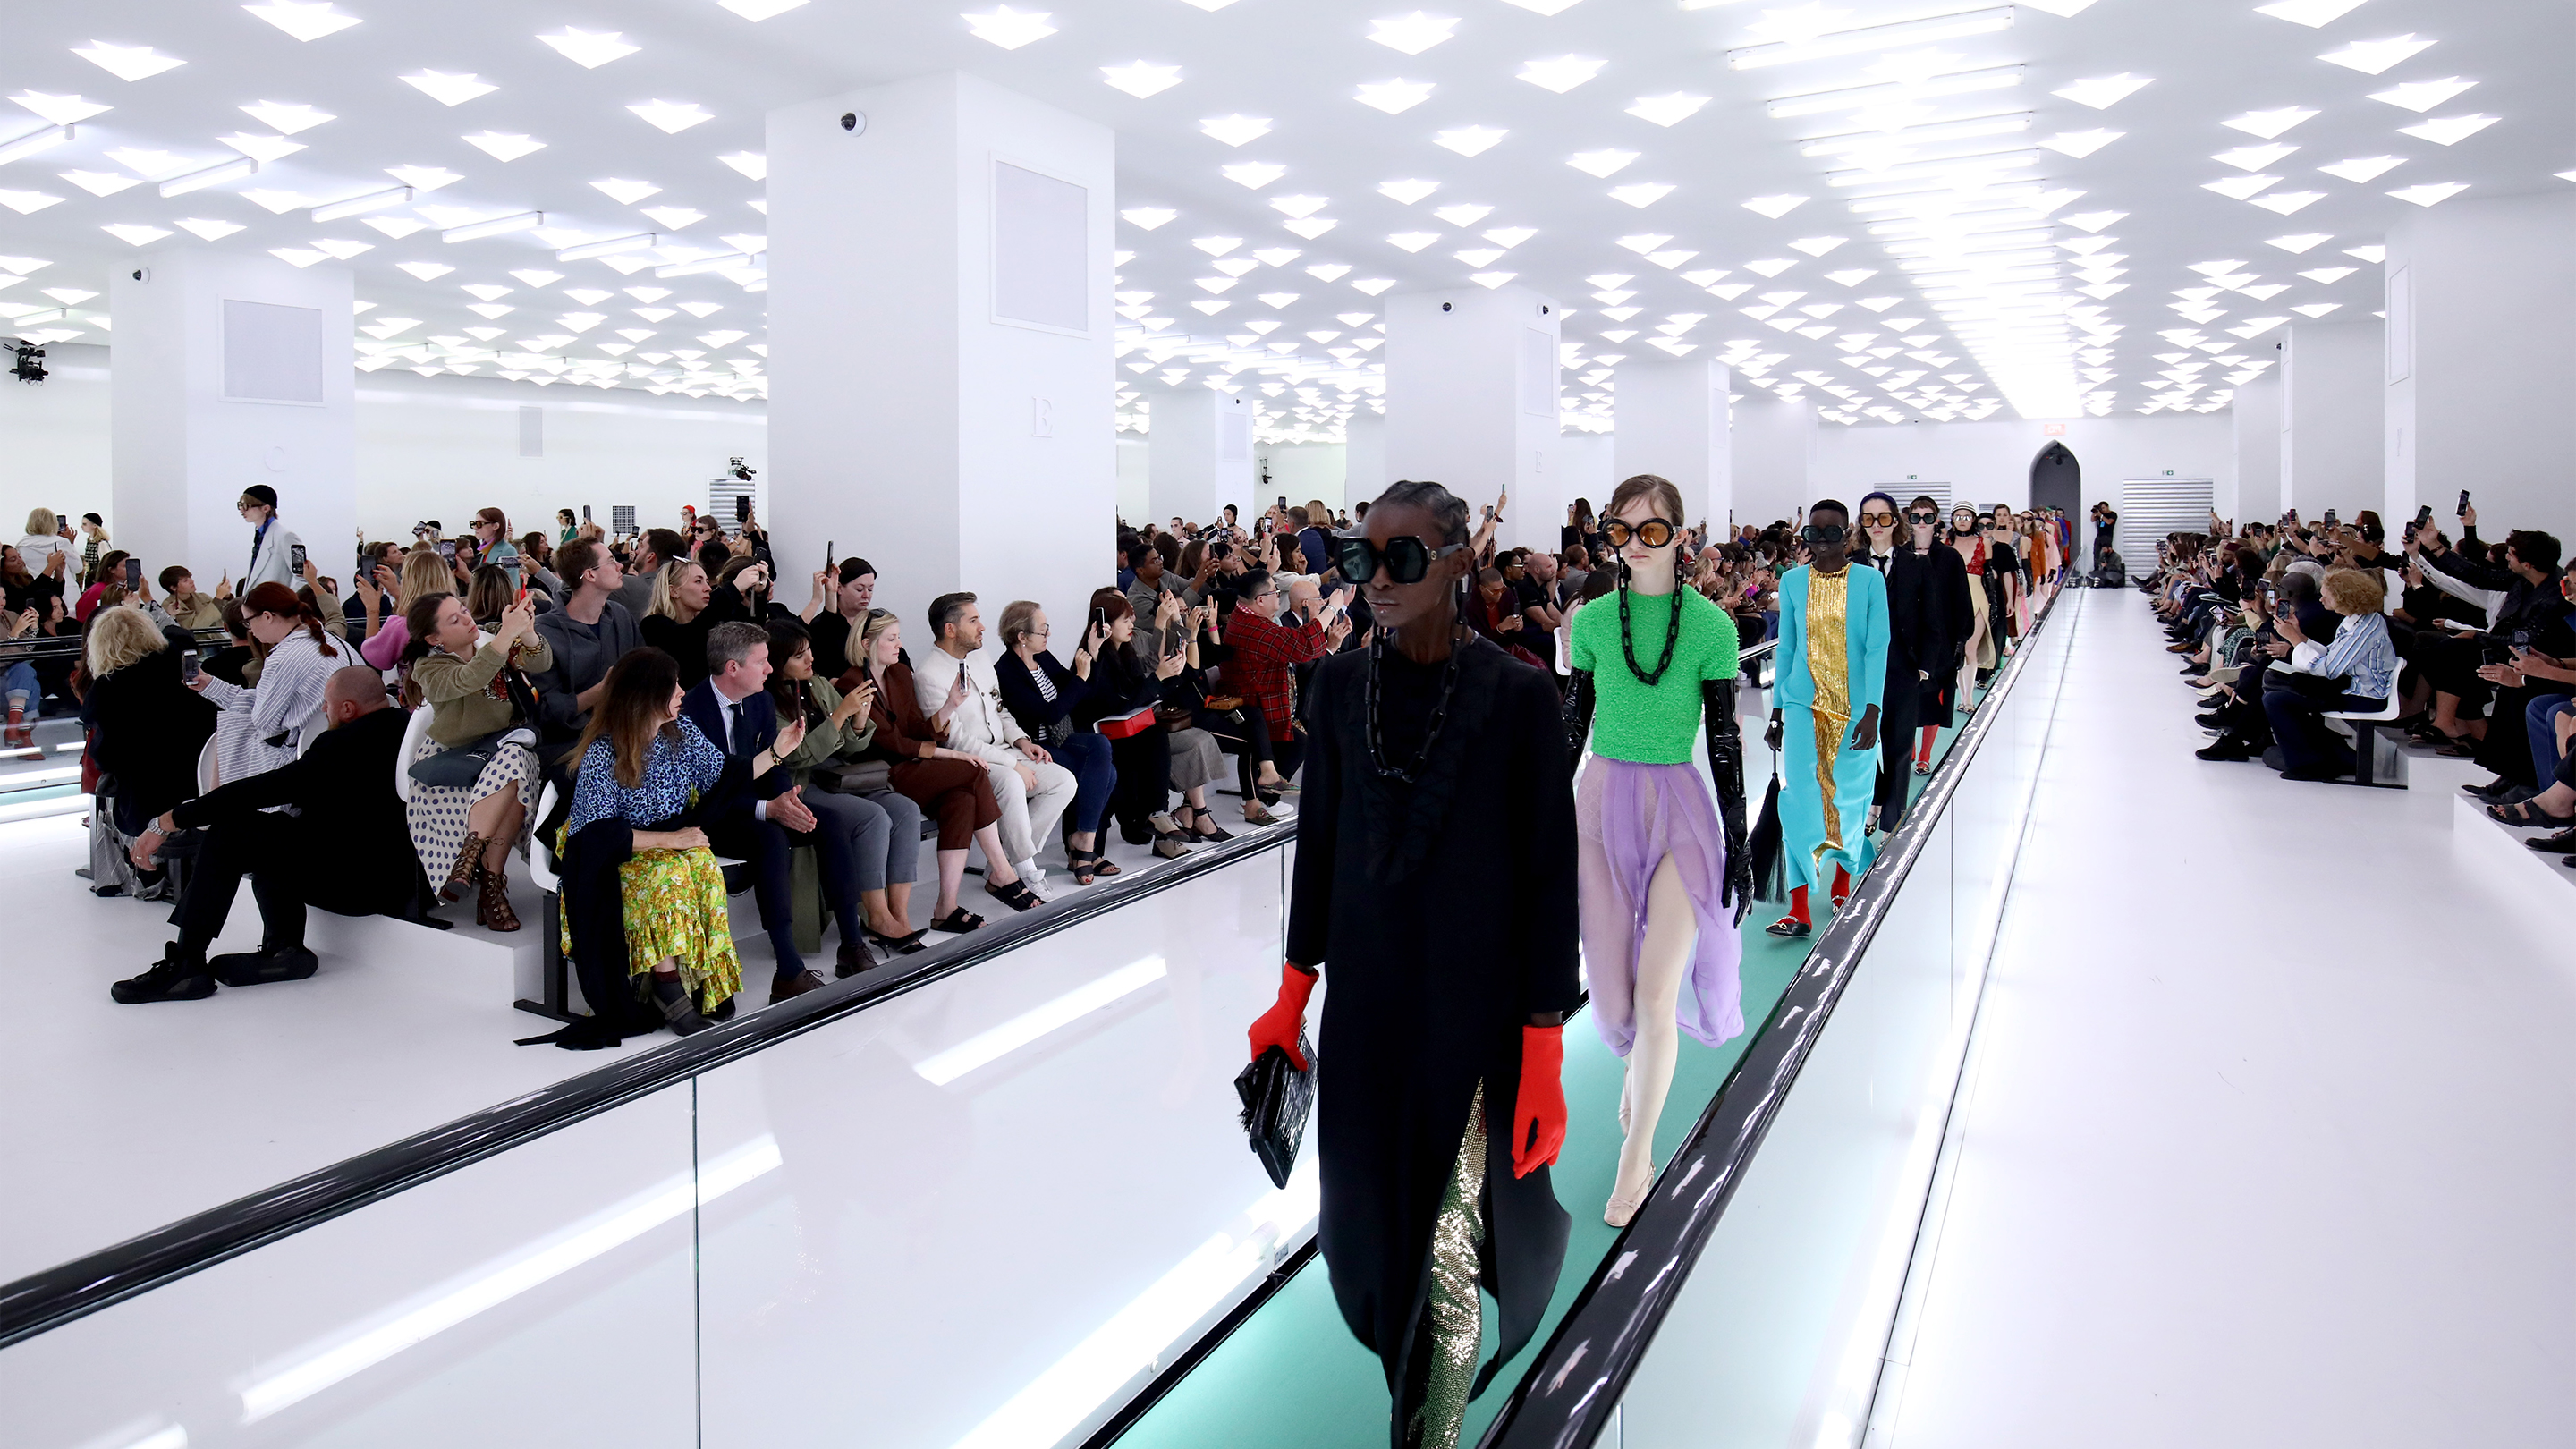 Covid 19 Leading To Changes In High Fashion Industry Marketplace